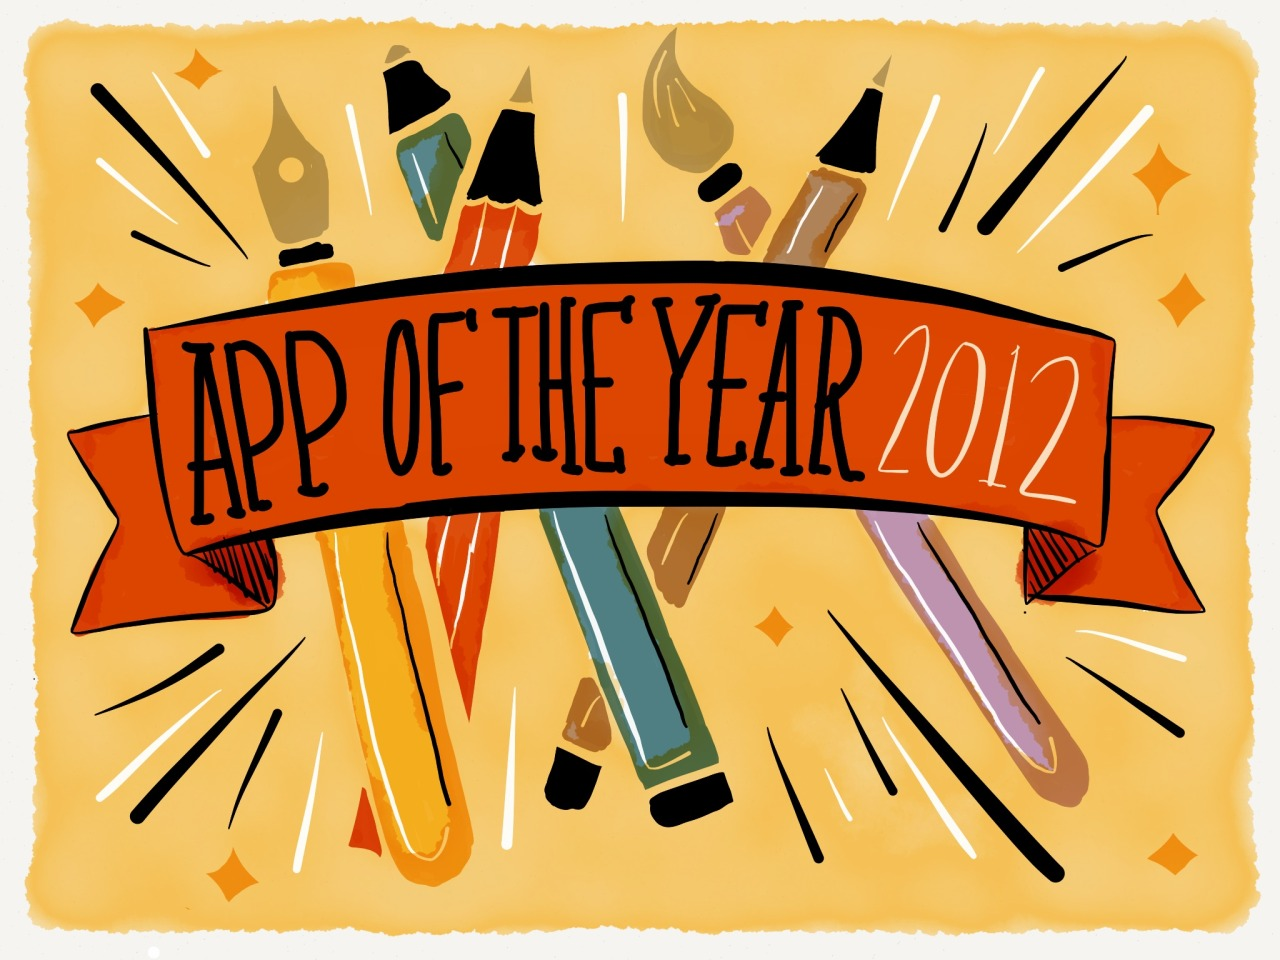 "happy days paper by fiftythree is named app of the year In March, FiftyThree, the company I work with on content and community, launched a beautiful app called Paper that lets users create on the iPad. Today, Apple named Paper iPad App of the Year.  2012 was not easy, but it was the year I got the chance to work with some of the most thoughtful and dedicated people I've known. There will always be those who seek overnight success, who take the path of least resistance, and who think relationships will be easy once they meet a person named The One. But, at last, I think I get it — there are no shortcuts to being really good at what you do. You simply keep working at it. And, most times, it's fun and challenging and you're surprised it's considered ""work"" at all because it doesn't feel like it. FiftyThree didn't win many awards this year because of luck or lack of competition. Instead, I see them practice what they preach. They build everything with purpose, driven by the ingrained desire to make making beautiful, approachable, fun and intuitive. I'm excited to continue sharing the story of FiftyThree. Take a look at the amazing work being created with Paper on Made with Paper and, if you don't have the app already, see what you're missing. Experiment, screw up and start again. There's no wrong way to use Paper, and that's the beauty of it. Below are just a few Paper creations I found while curating the awesome work made in the app this year.      top to bottom allen lau / tinyimplications / days on paper / andydrawscats / zhen zeng / travis morgan"